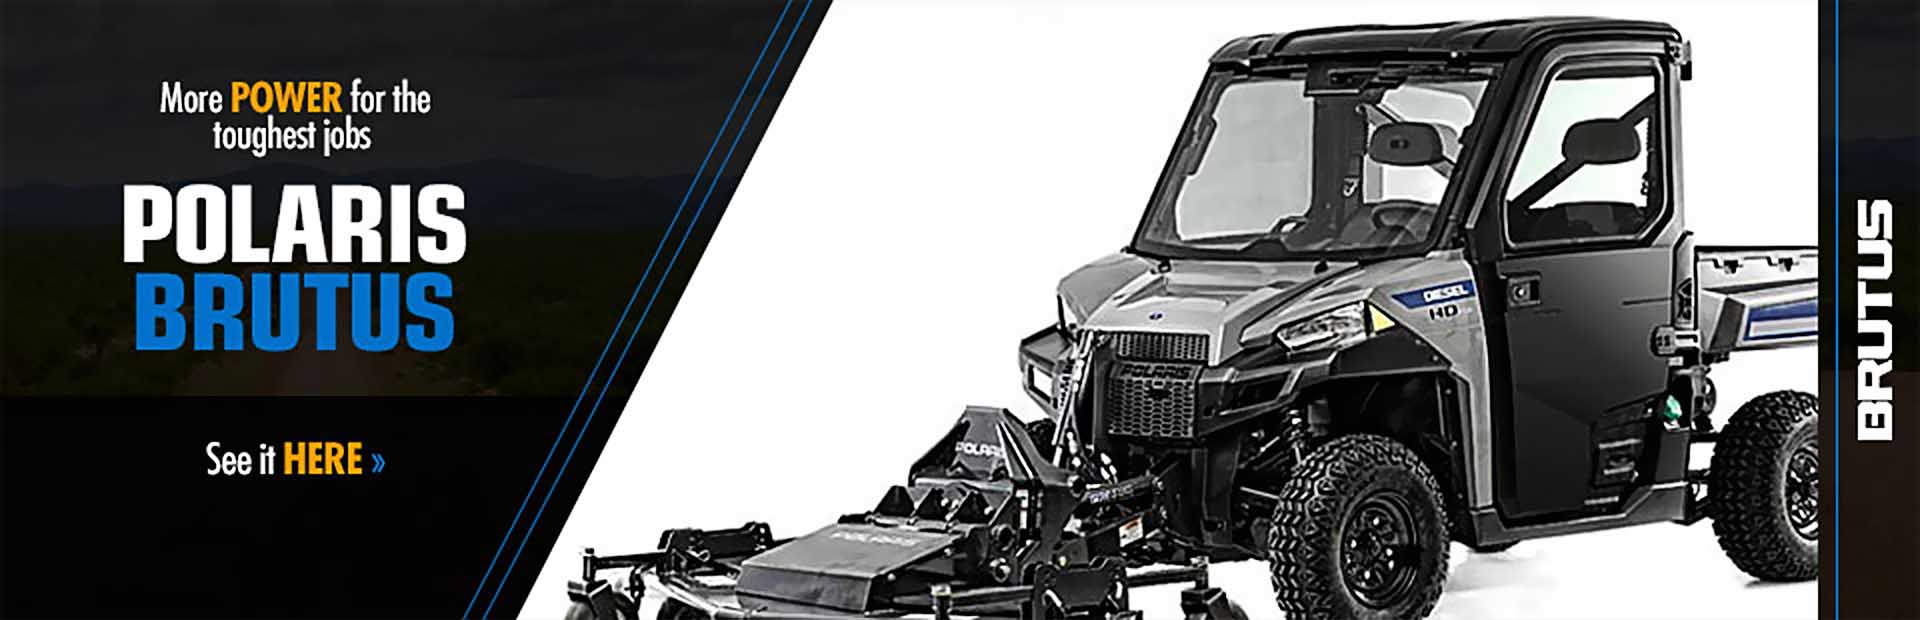 Click here to view the Polaris BRUTUS® models.